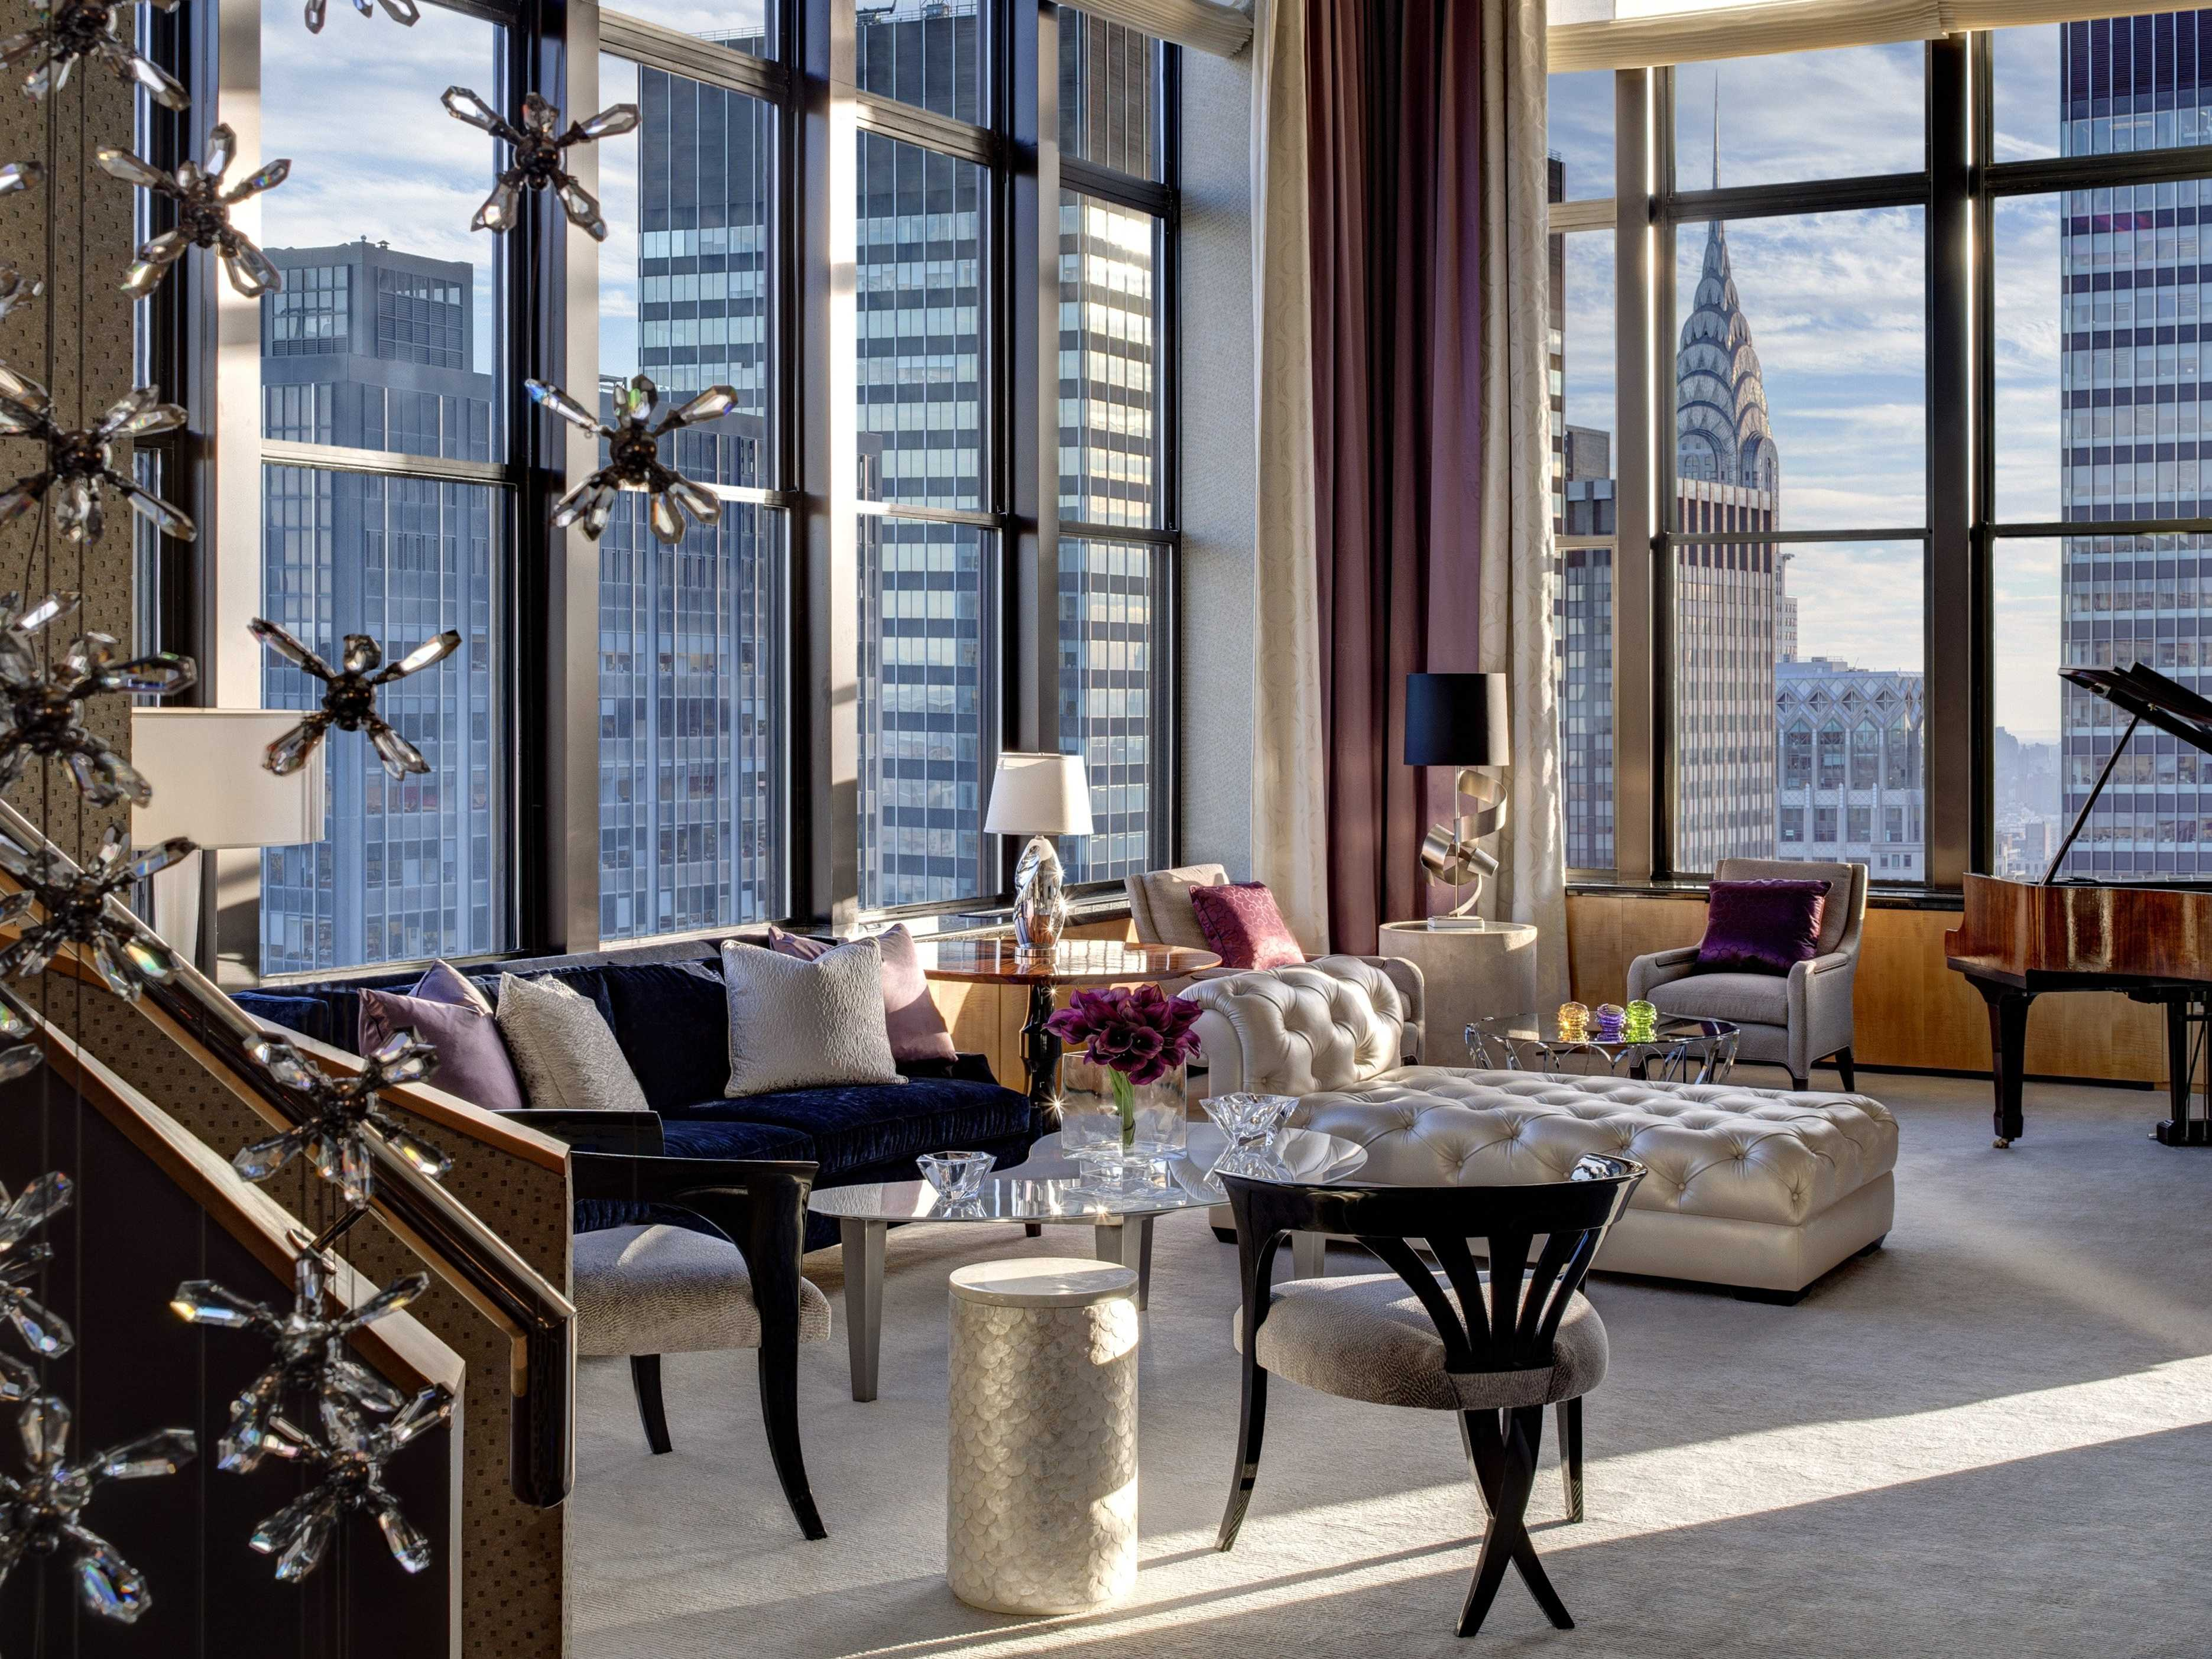 check-into-the-new-york-palaces-lavish-jewel-suite-for-25000-a-night-photos